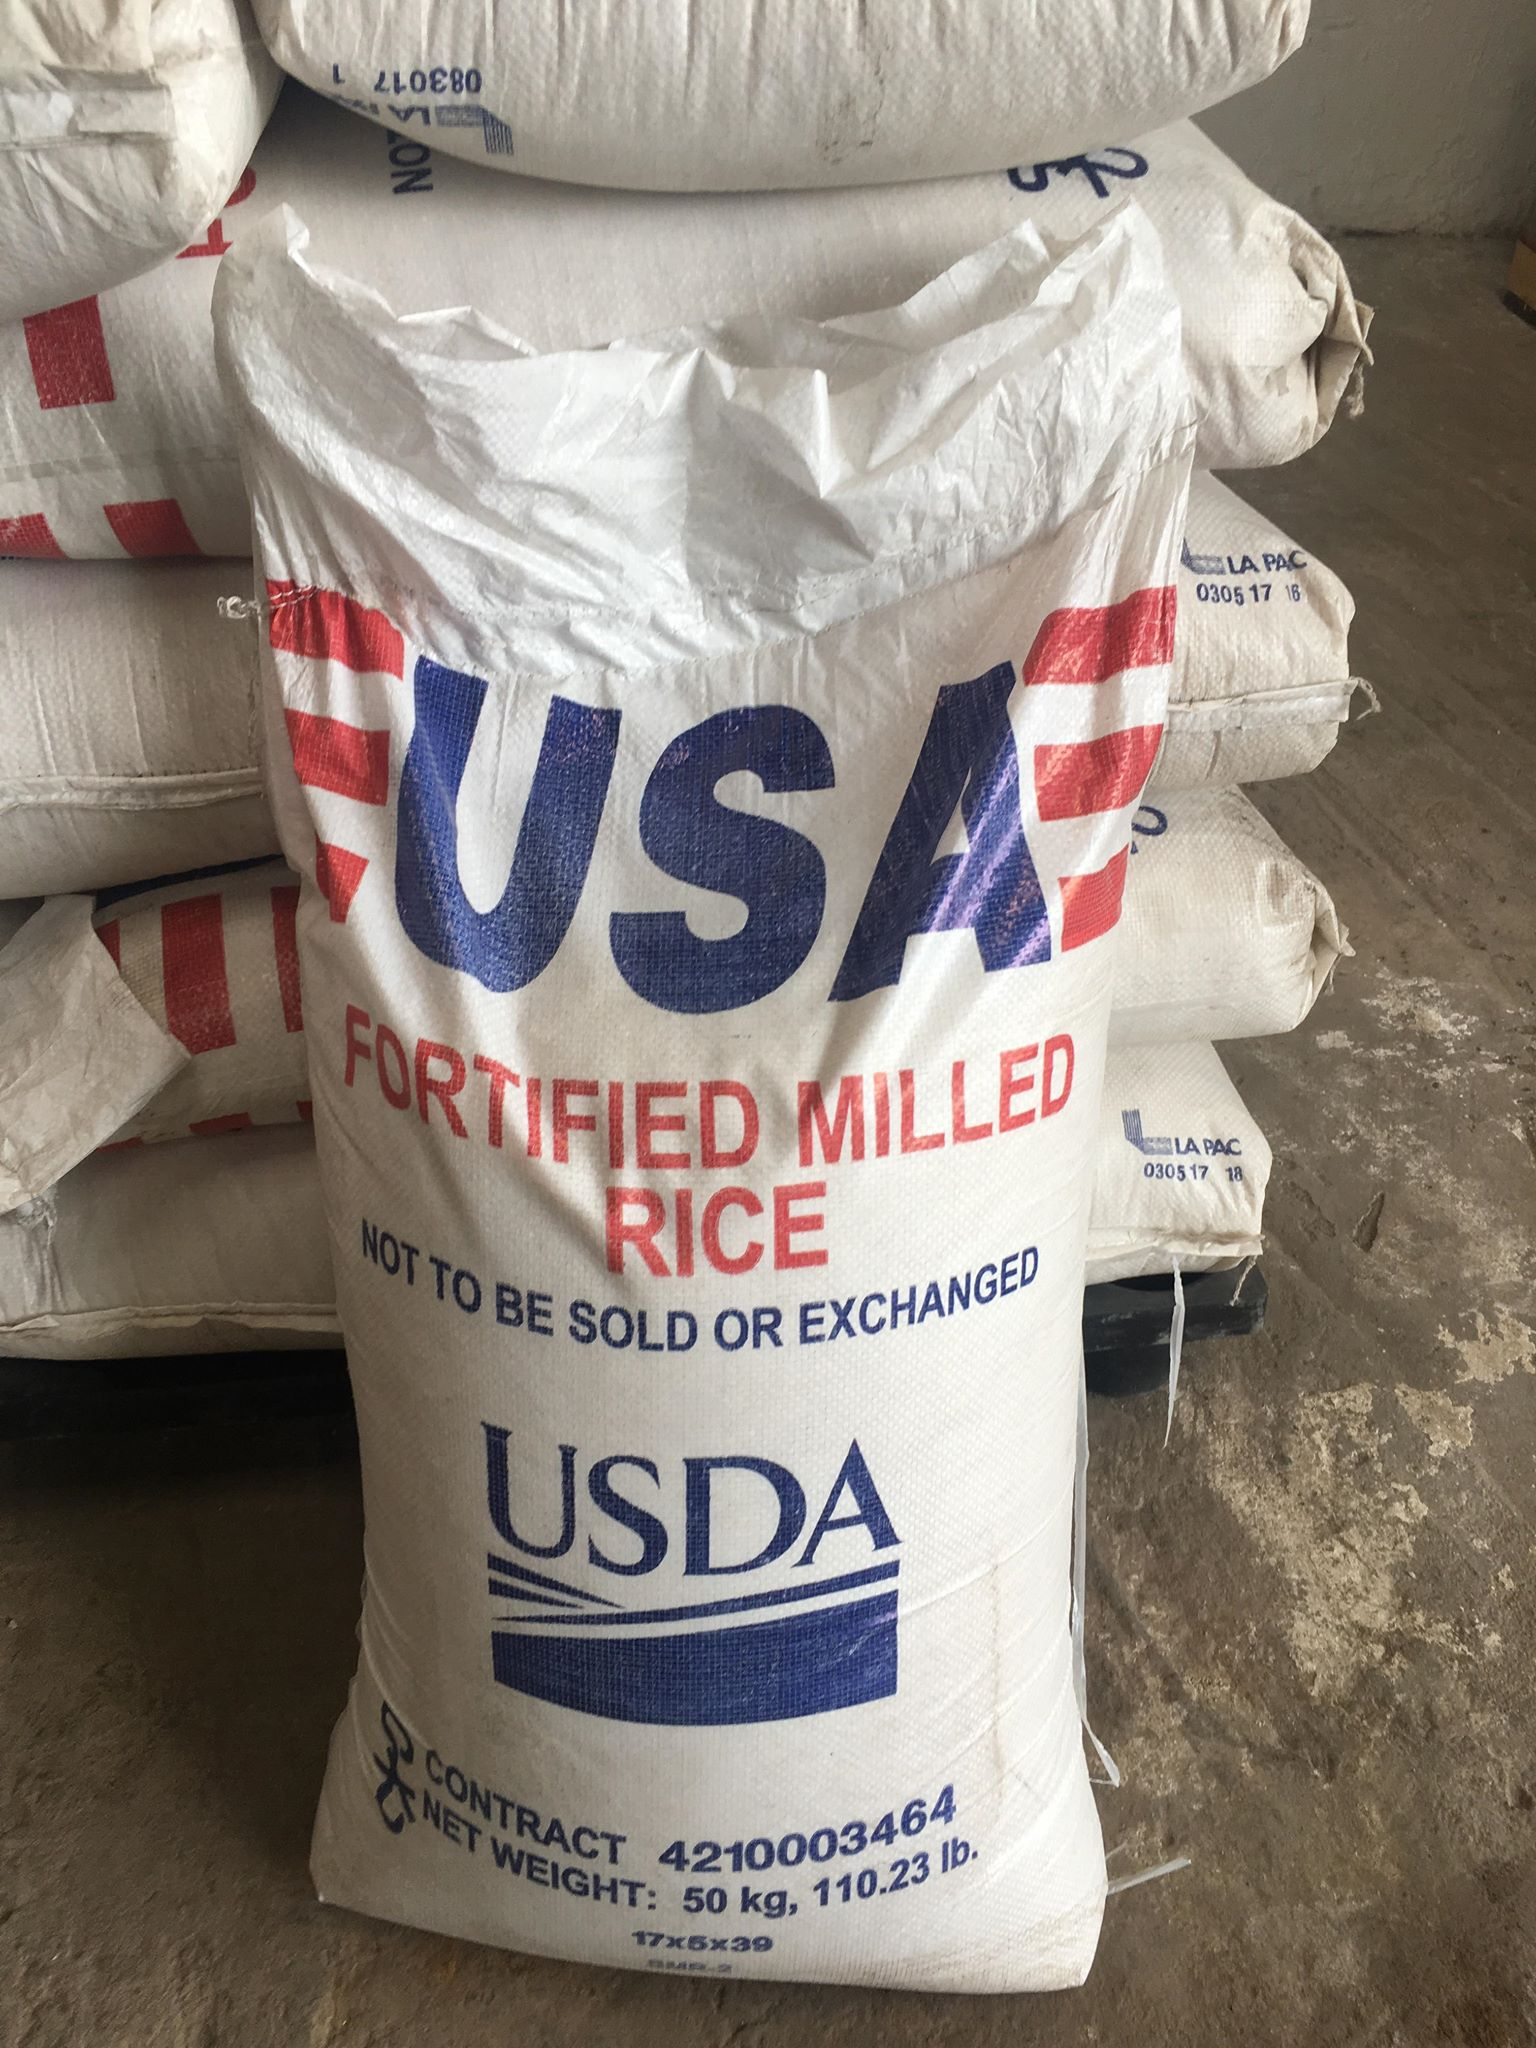 Image of a bag of Fortified Rice from the USA